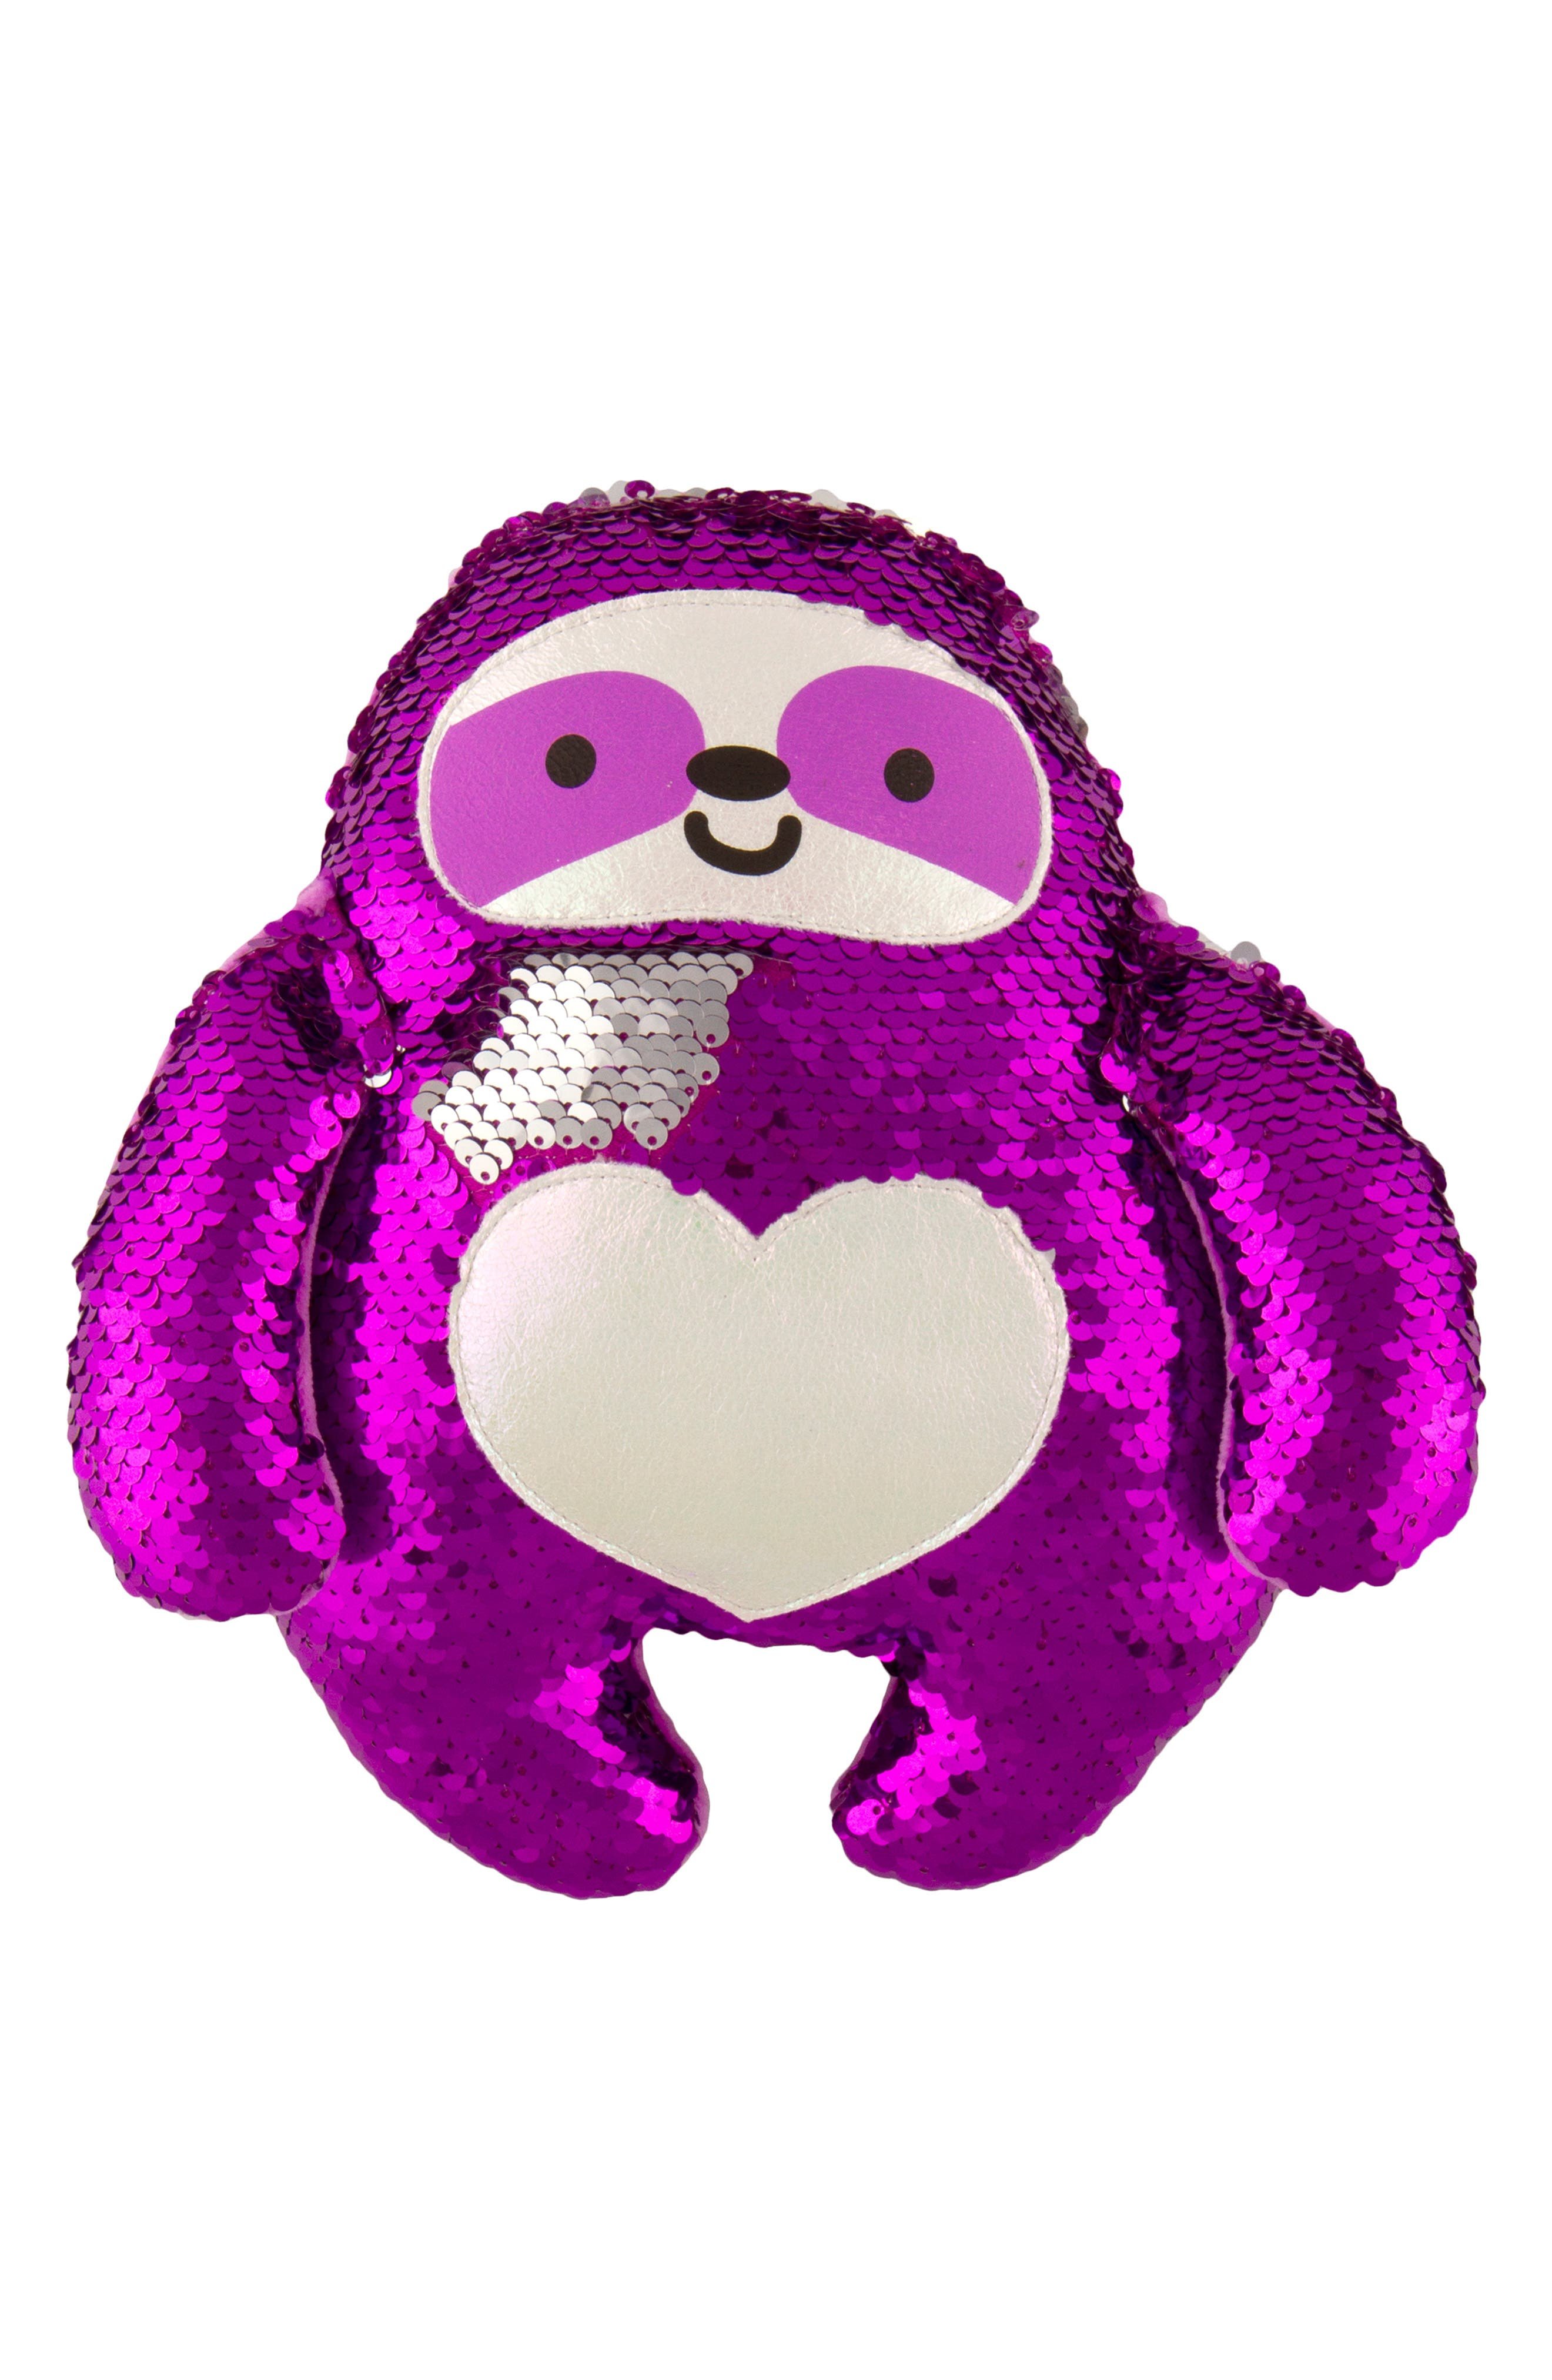 FASHION ANGELS,                             Magic Sequin Sloth Stuffed Animal,                             Main thumbnail 1, color,                             PURPLE